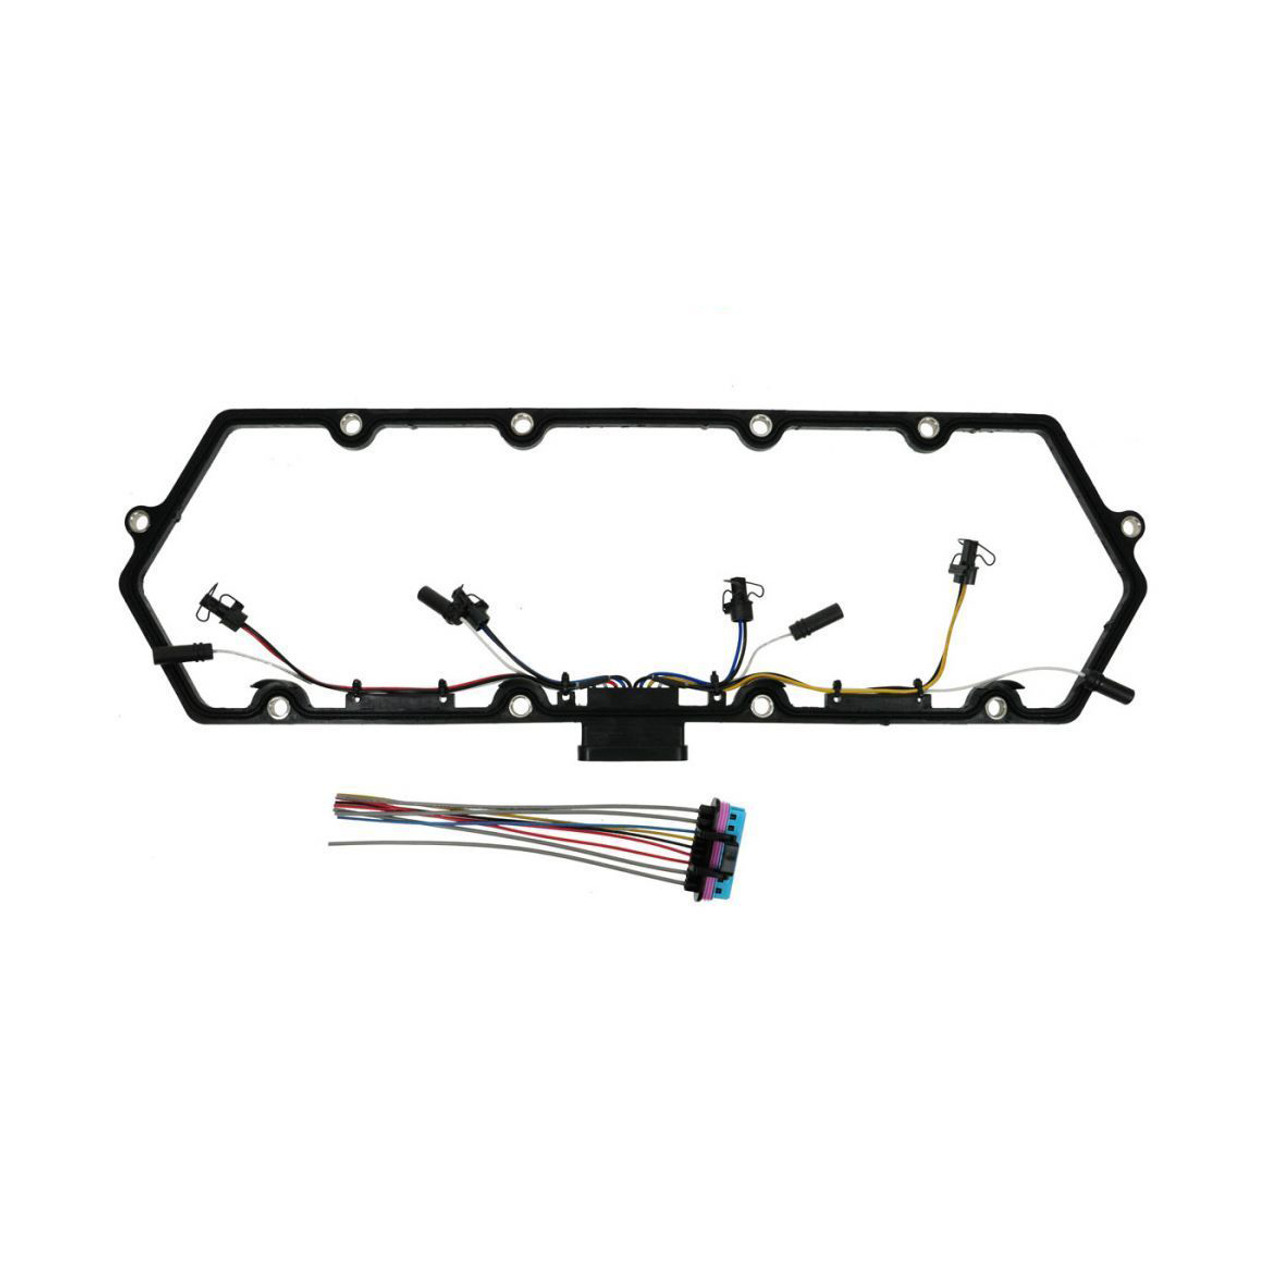 Valve Cover Gasket w/ Fuel Injector and Glow Plug Harness for 97-03 on